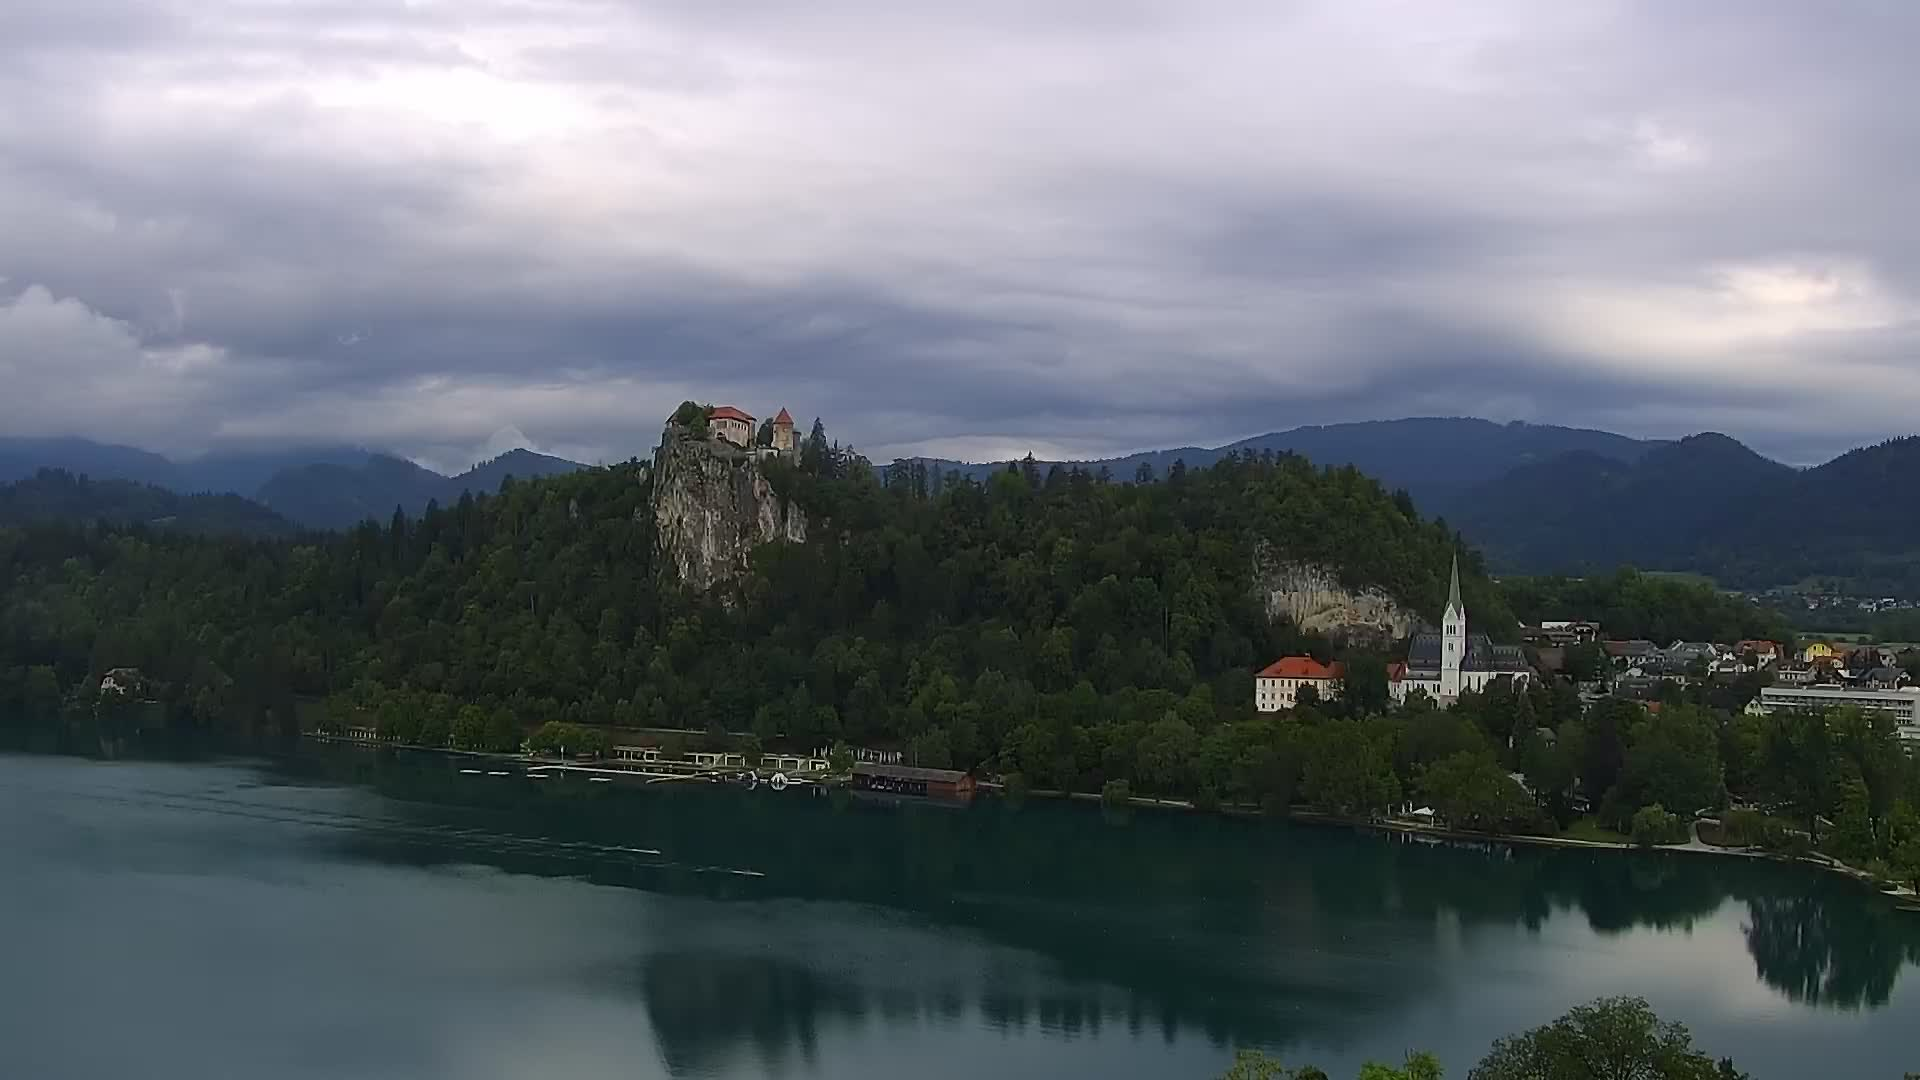 Bled Wed. 07:52